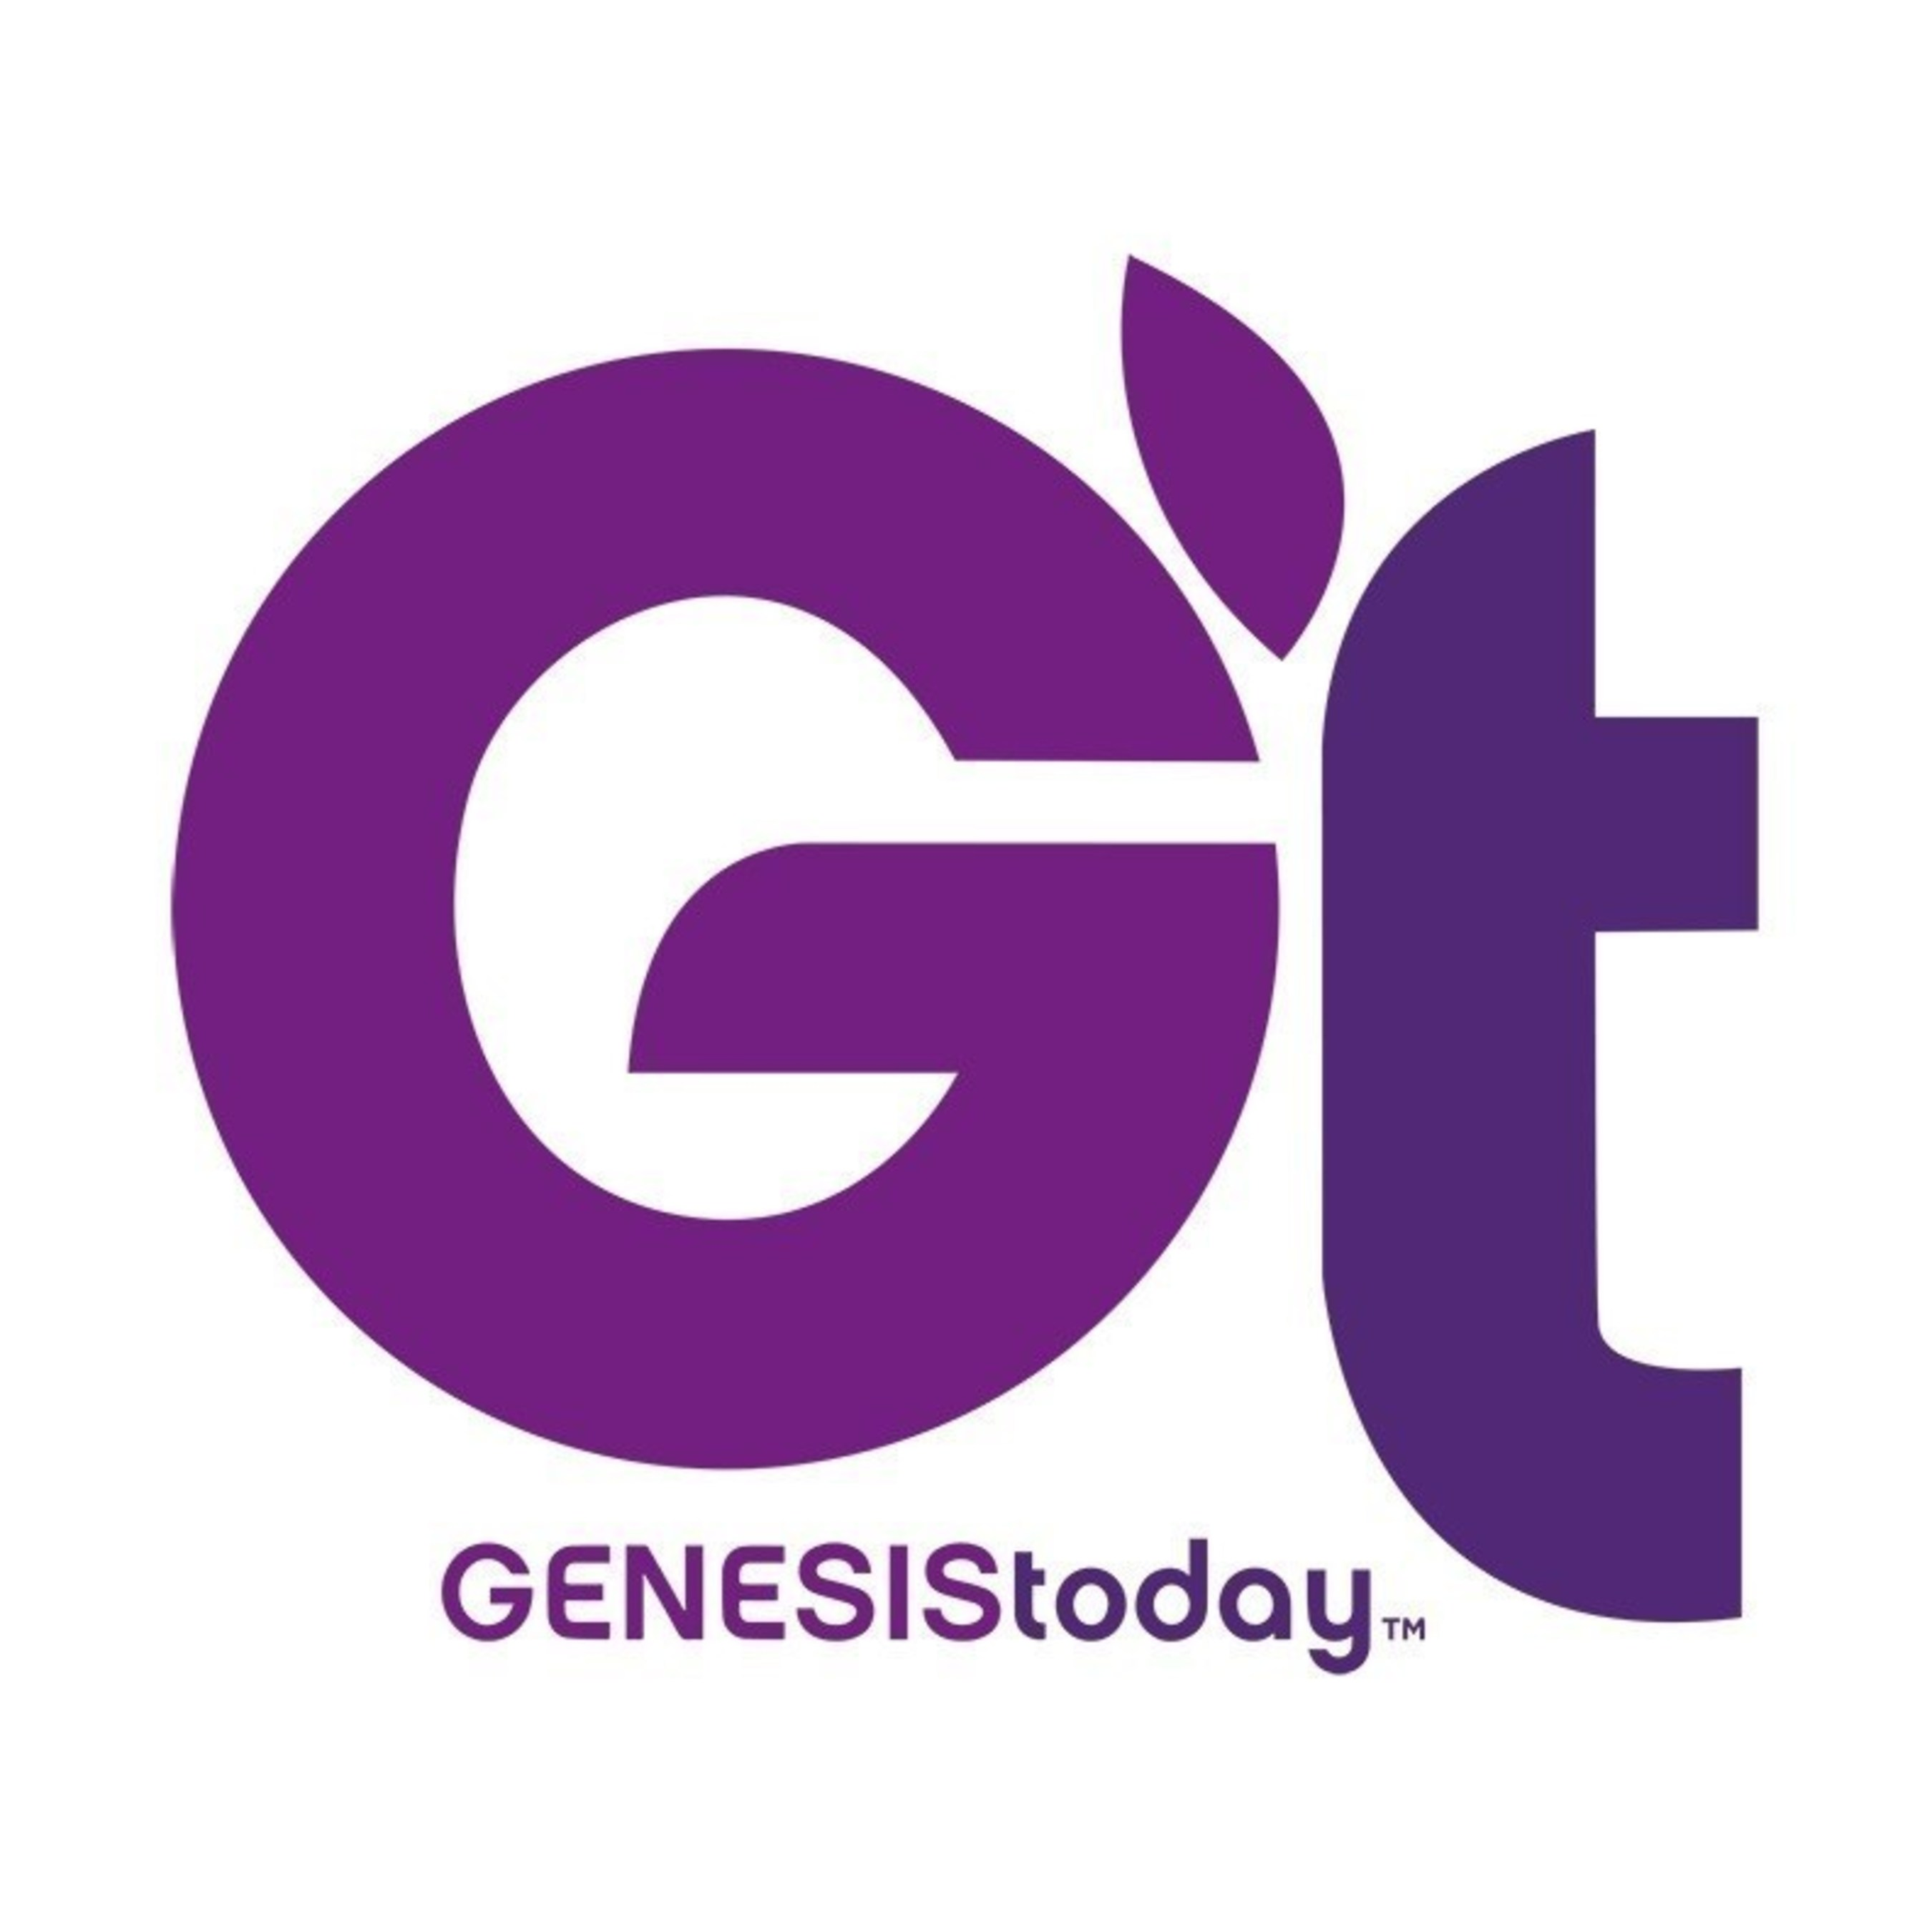 Genesis Today logo.